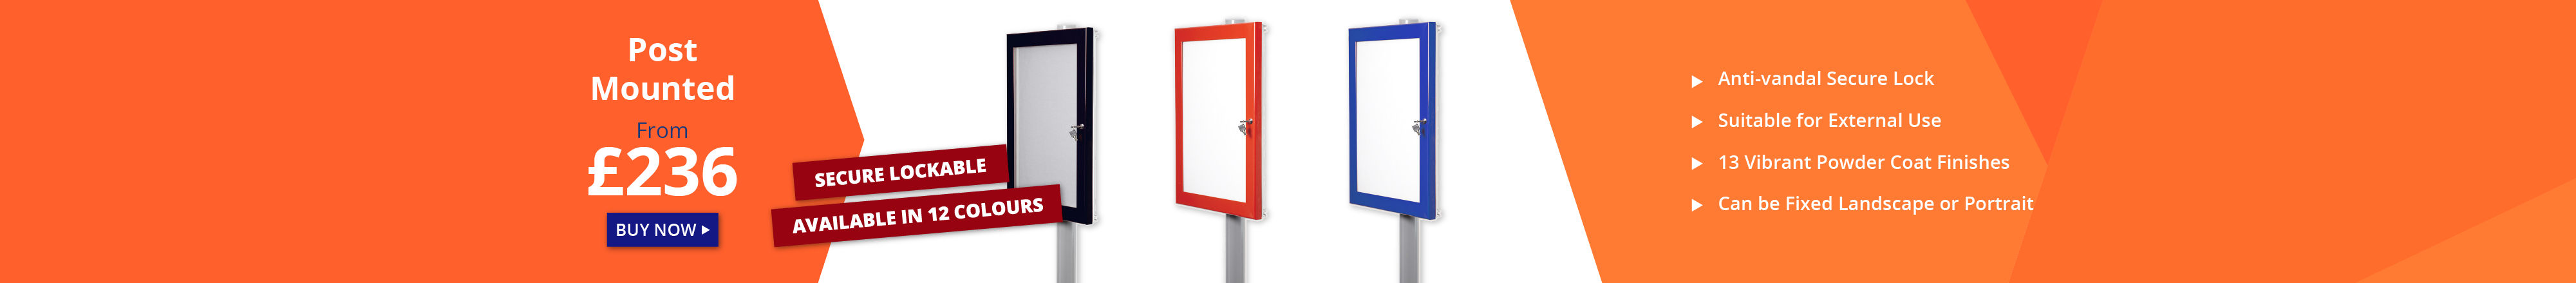 Post Mounted External Noticeboards XL Displays